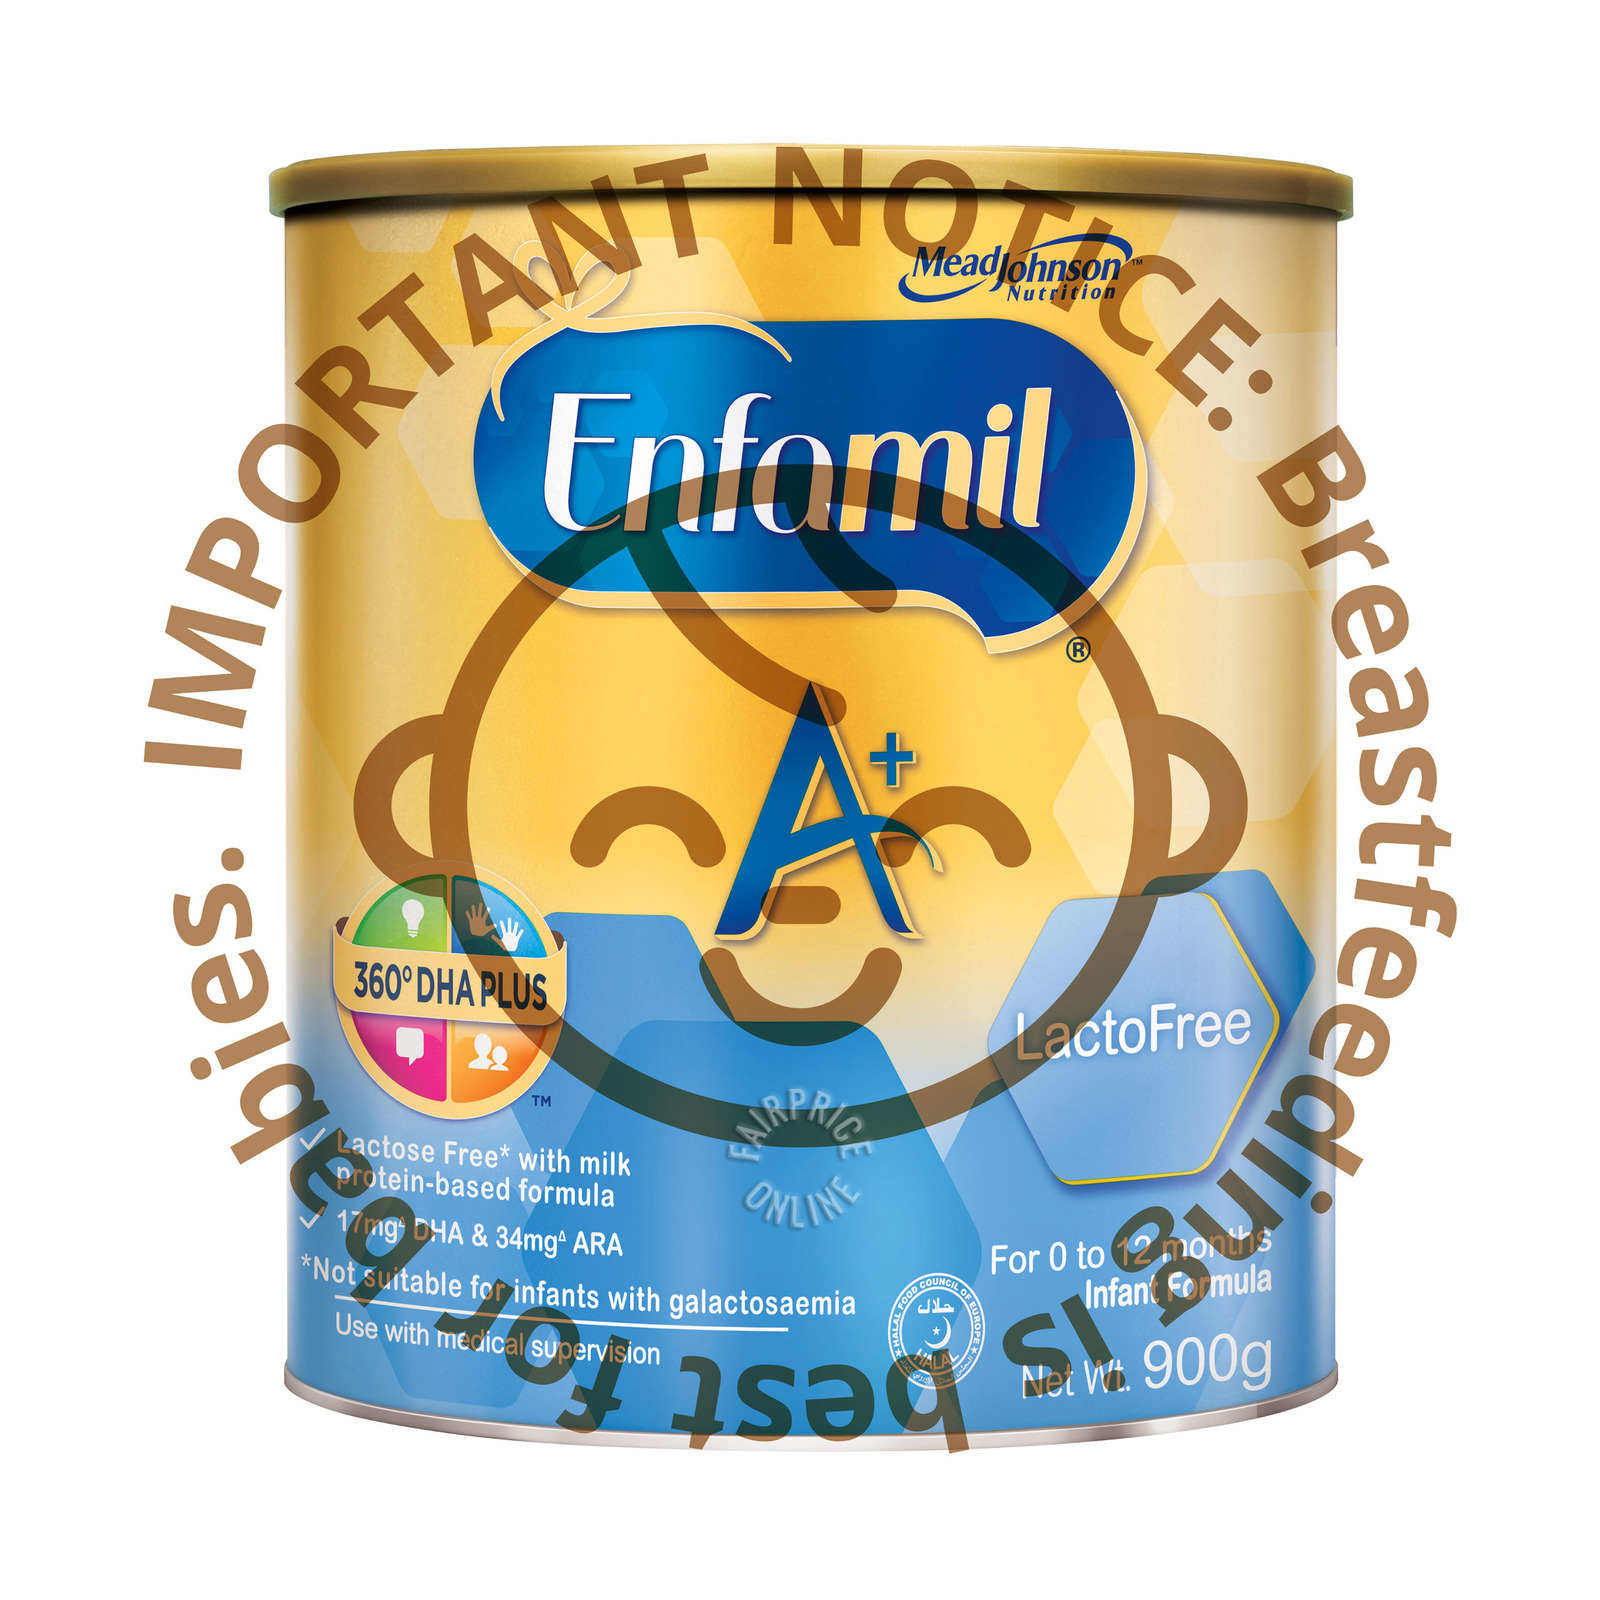 Enfamil A+ Infant Milk Powder Formula-Lacto Free (0 - 12 months)